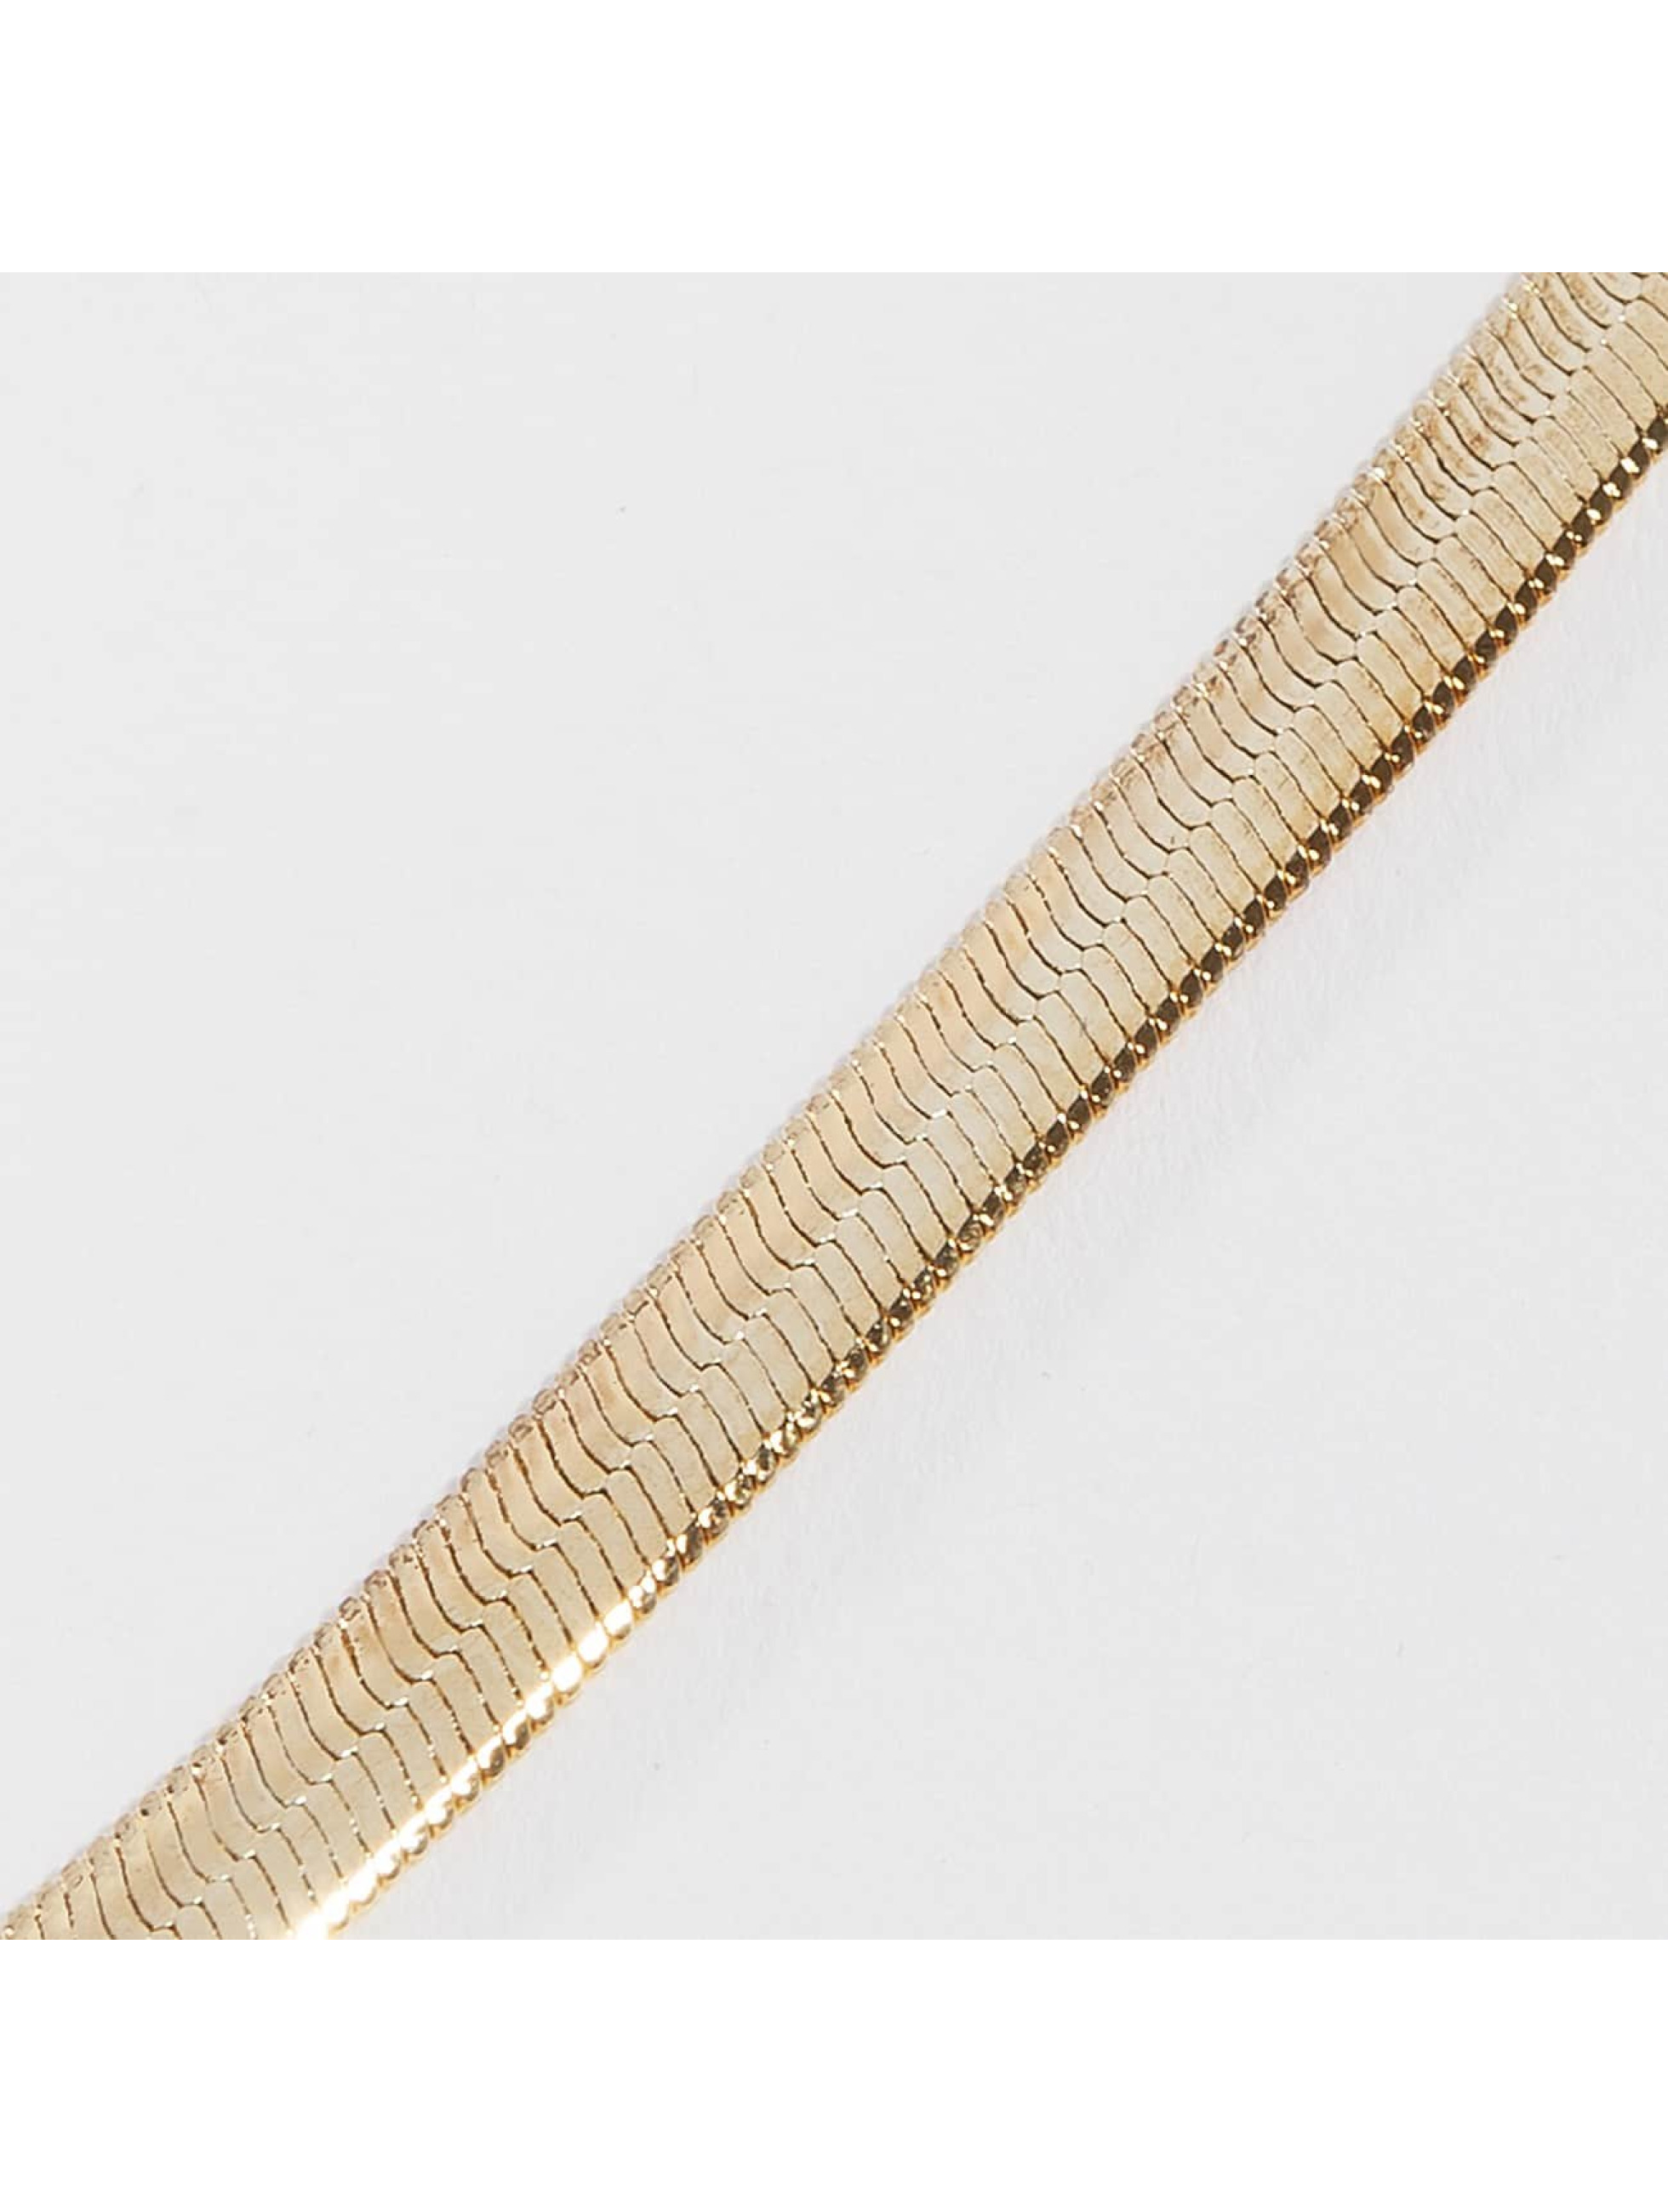 KING ICE Collier Gold_Plated 5mm Thin Herringbone or